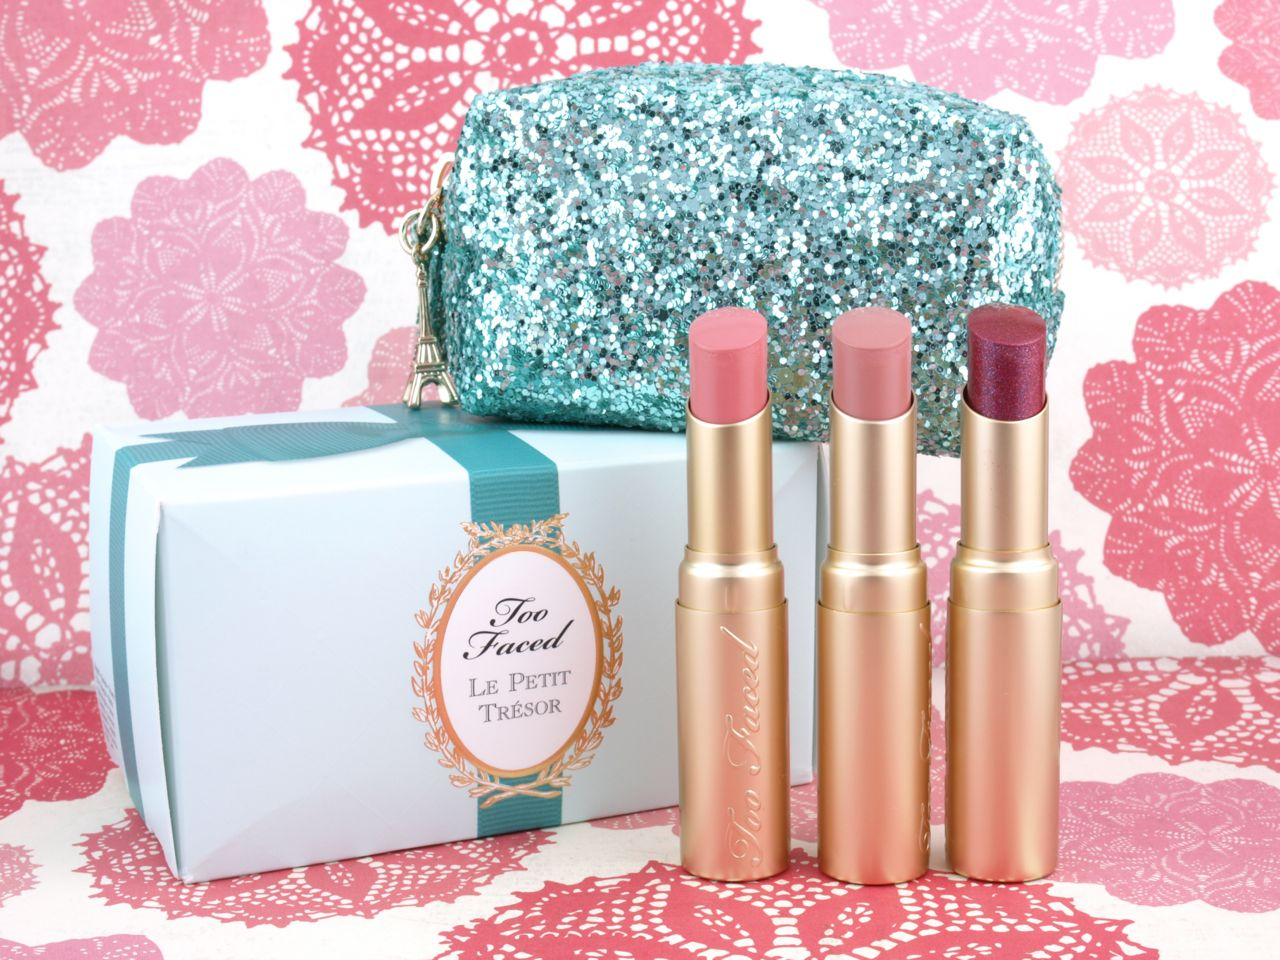 Too Faced Holiday 2015 Le Petit Tresor Set: Review and Swatches